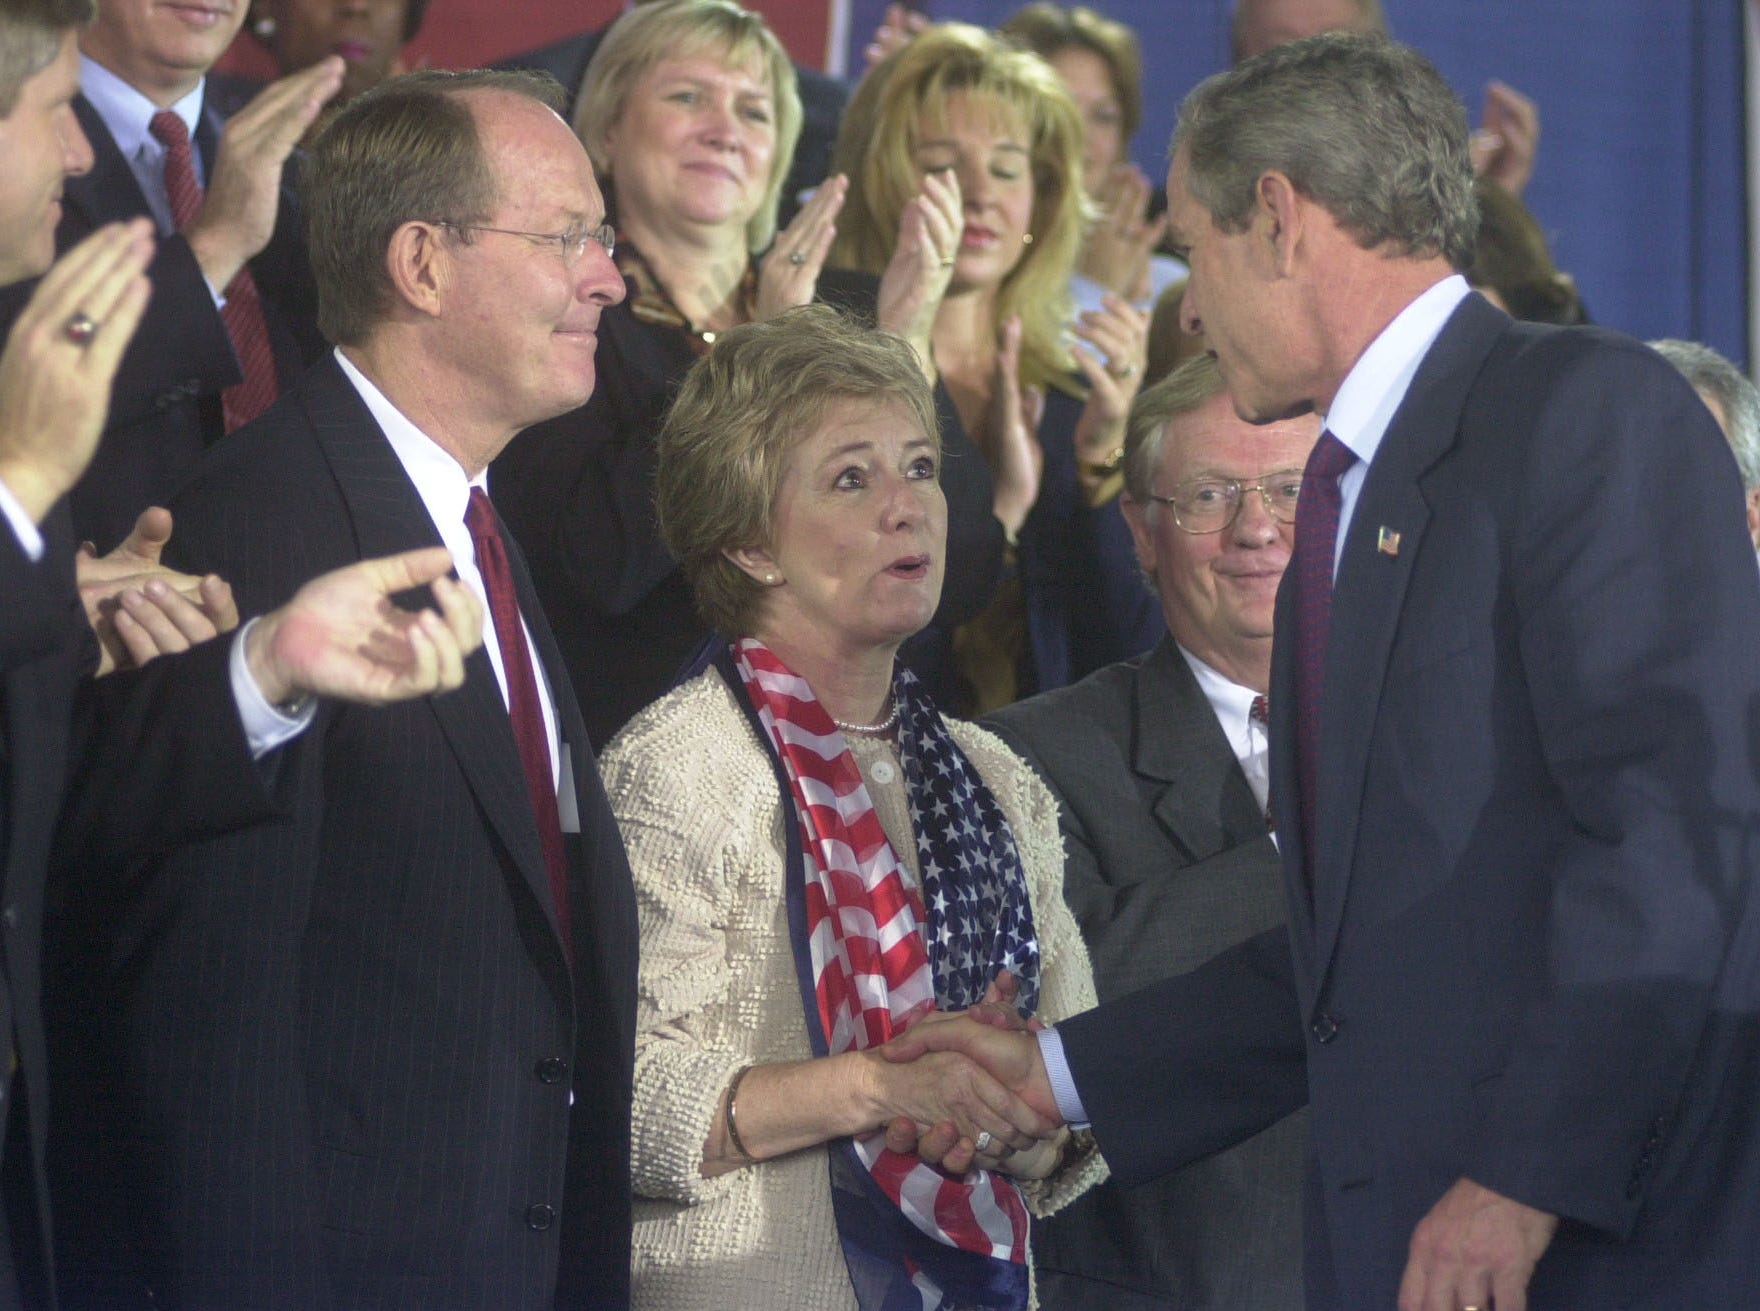 President George W. Bush greets Janice Bowling, center, and Lamar Alexander, left, at the Cherokee Aviation Hangar in Alcoa, Tenn., Tuesday, October 8, 2002 during an appearance where he addresses  the public.